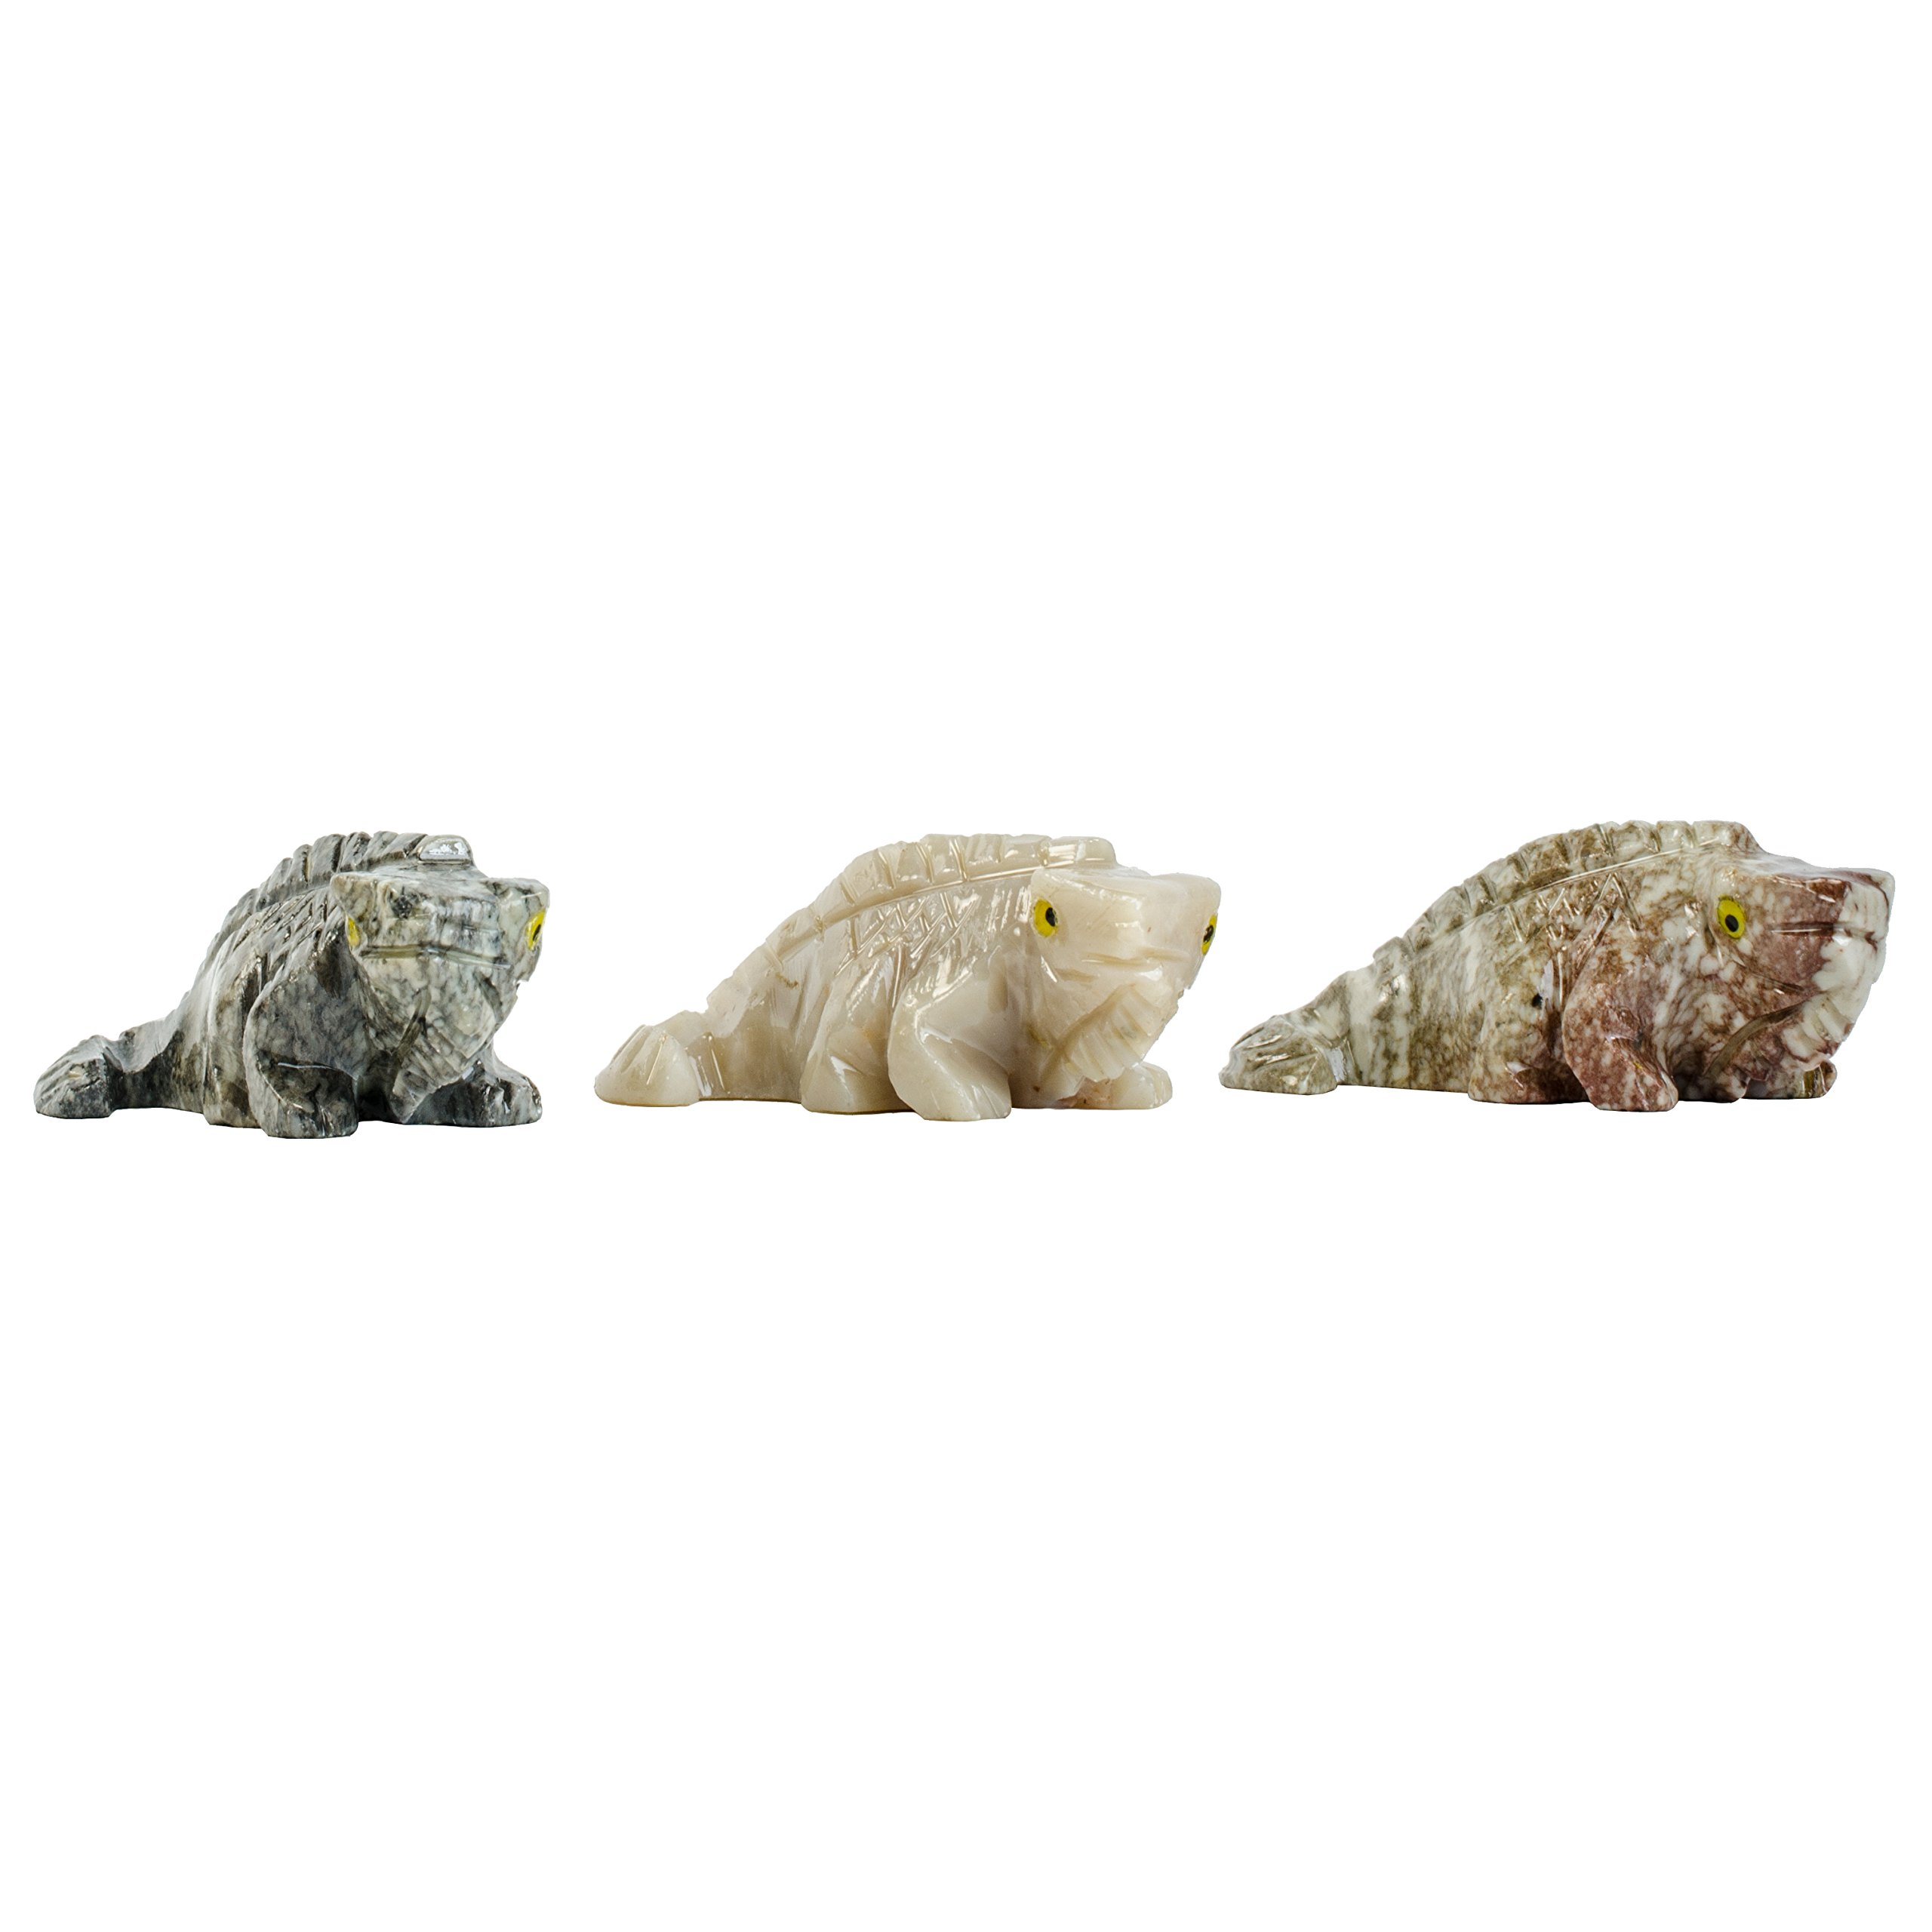 Digging Dolls : 10 pcs Artisan Iguana Collectable Animal Figurine - Party Favors, Stocking Stuffers, Gifts, Collecting and More!